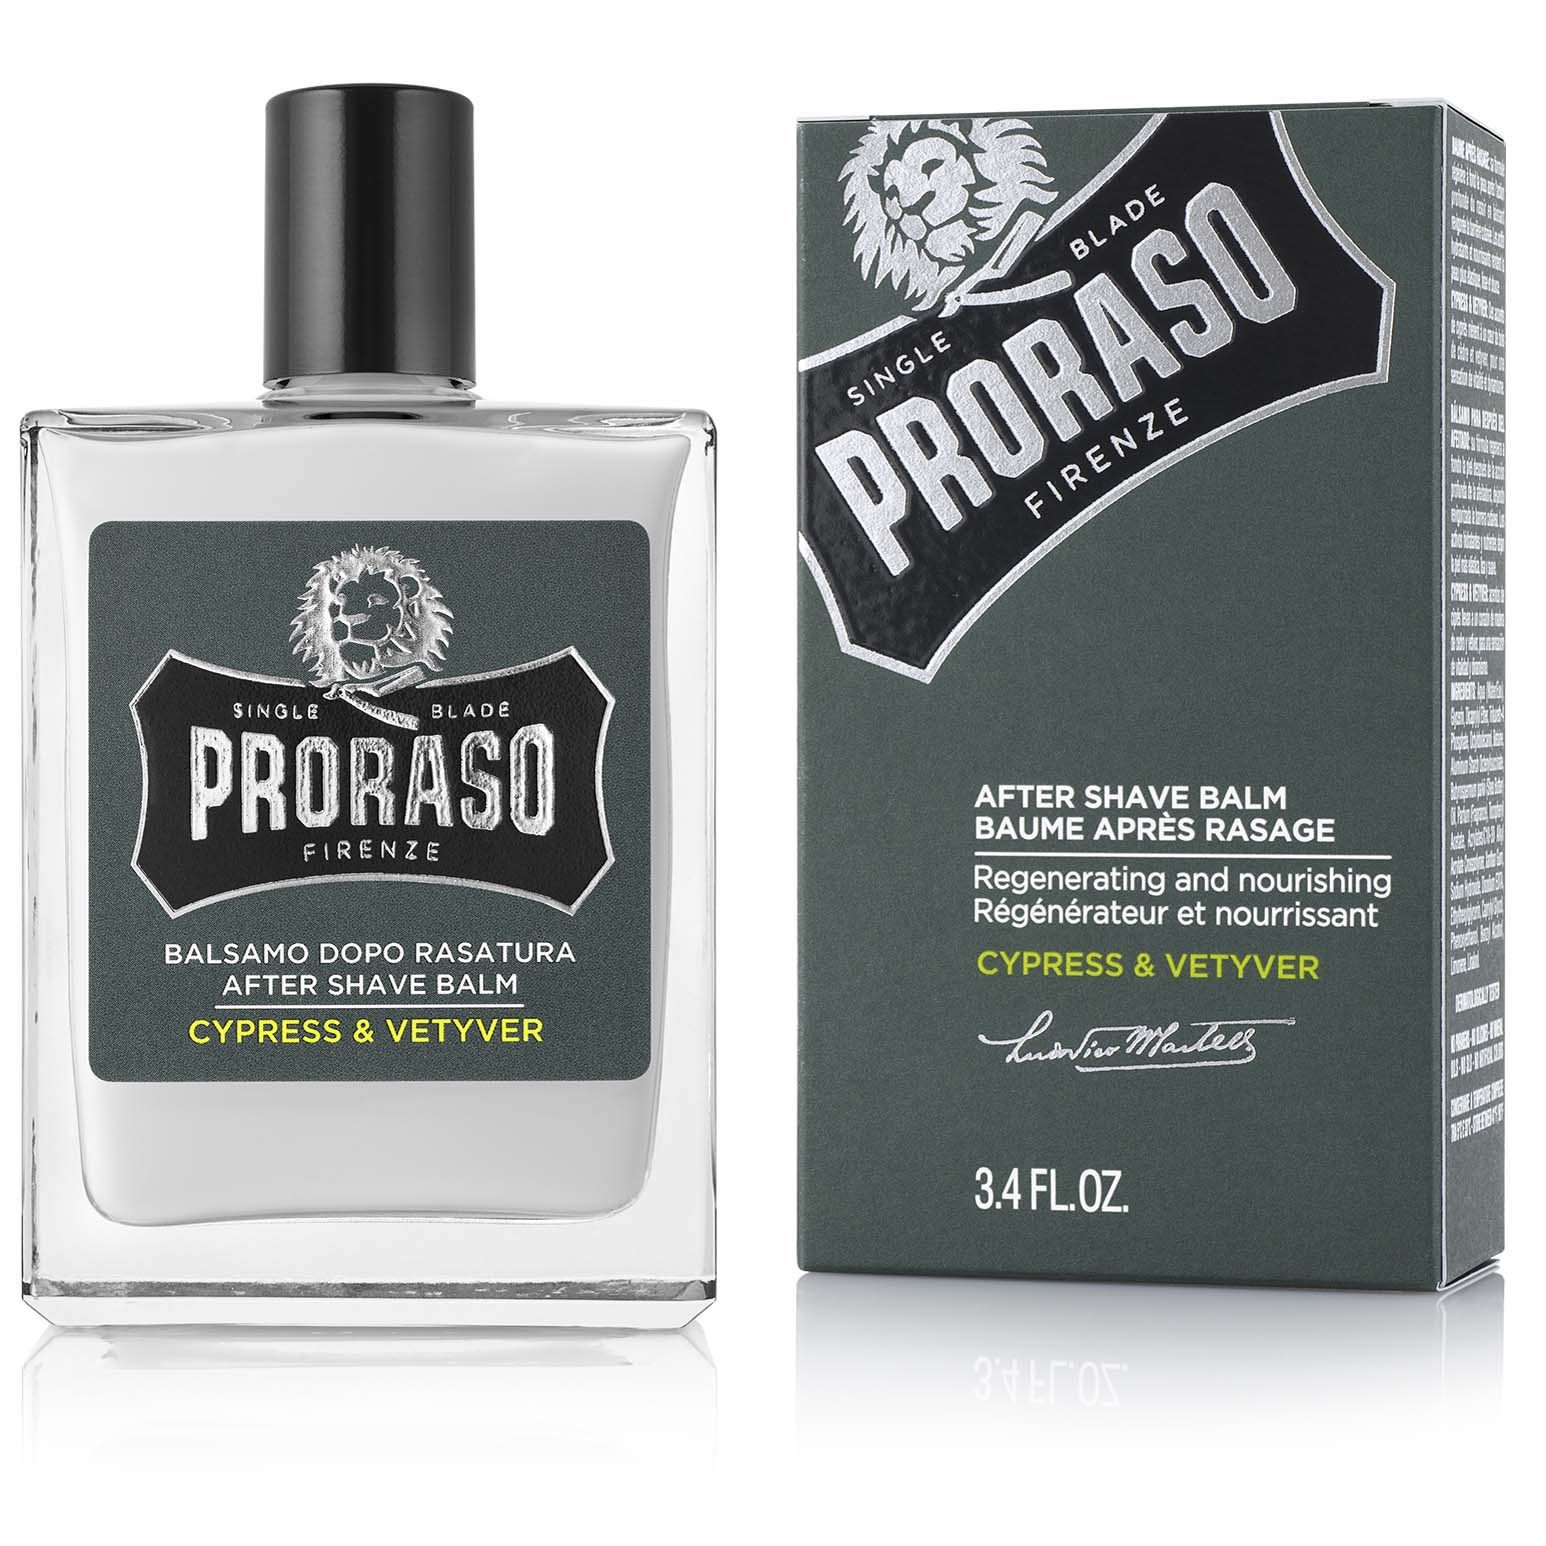 After Shave Balm Cypress & Vetyver 100ml